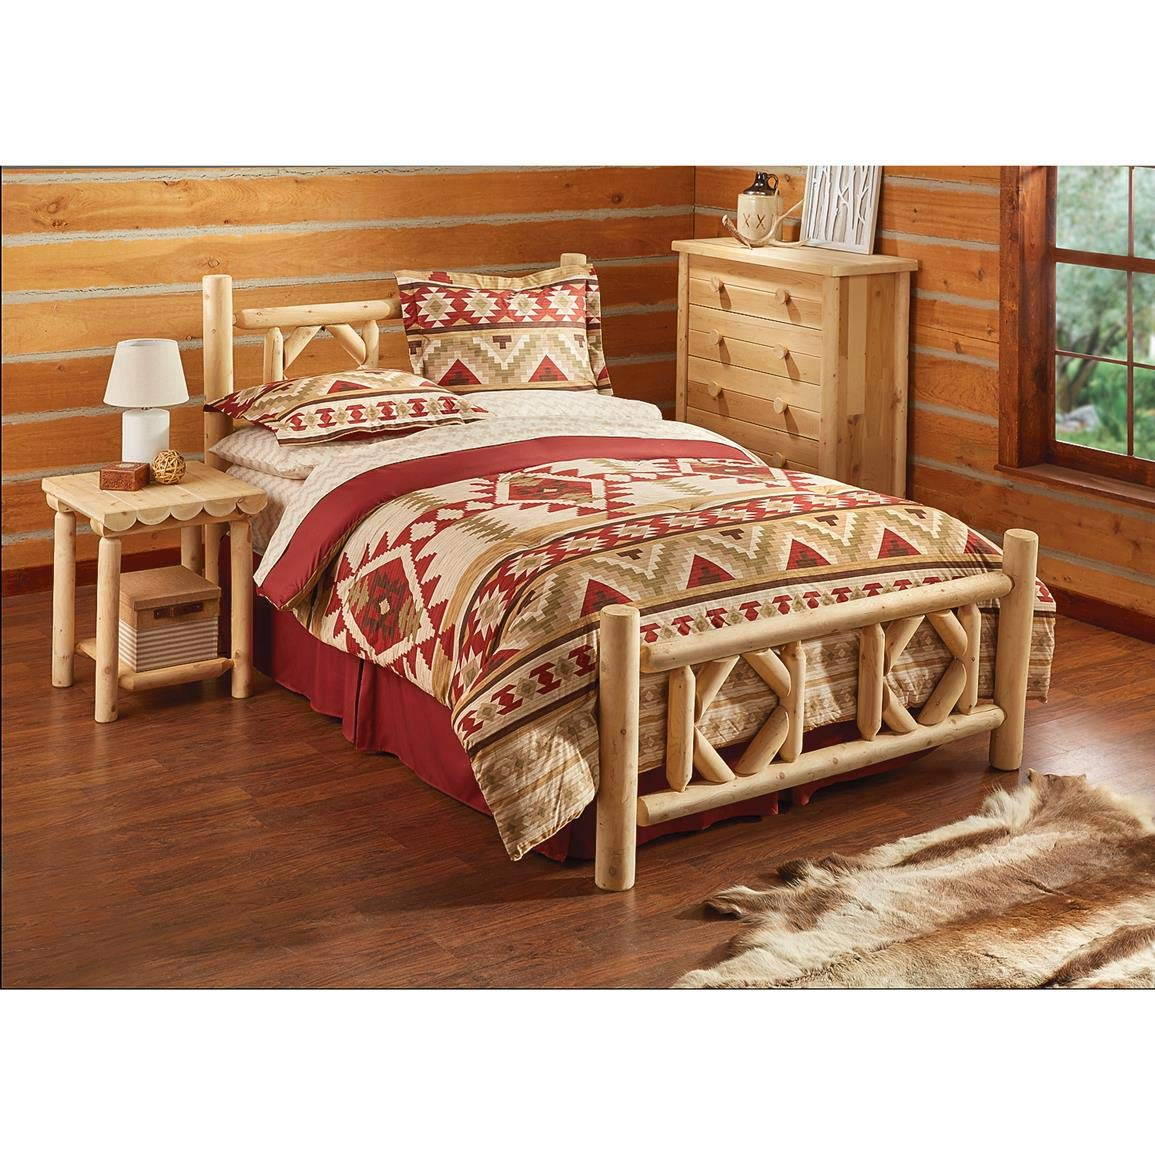 CASTLECREEK Diamond Cedar Log Bed, Queen